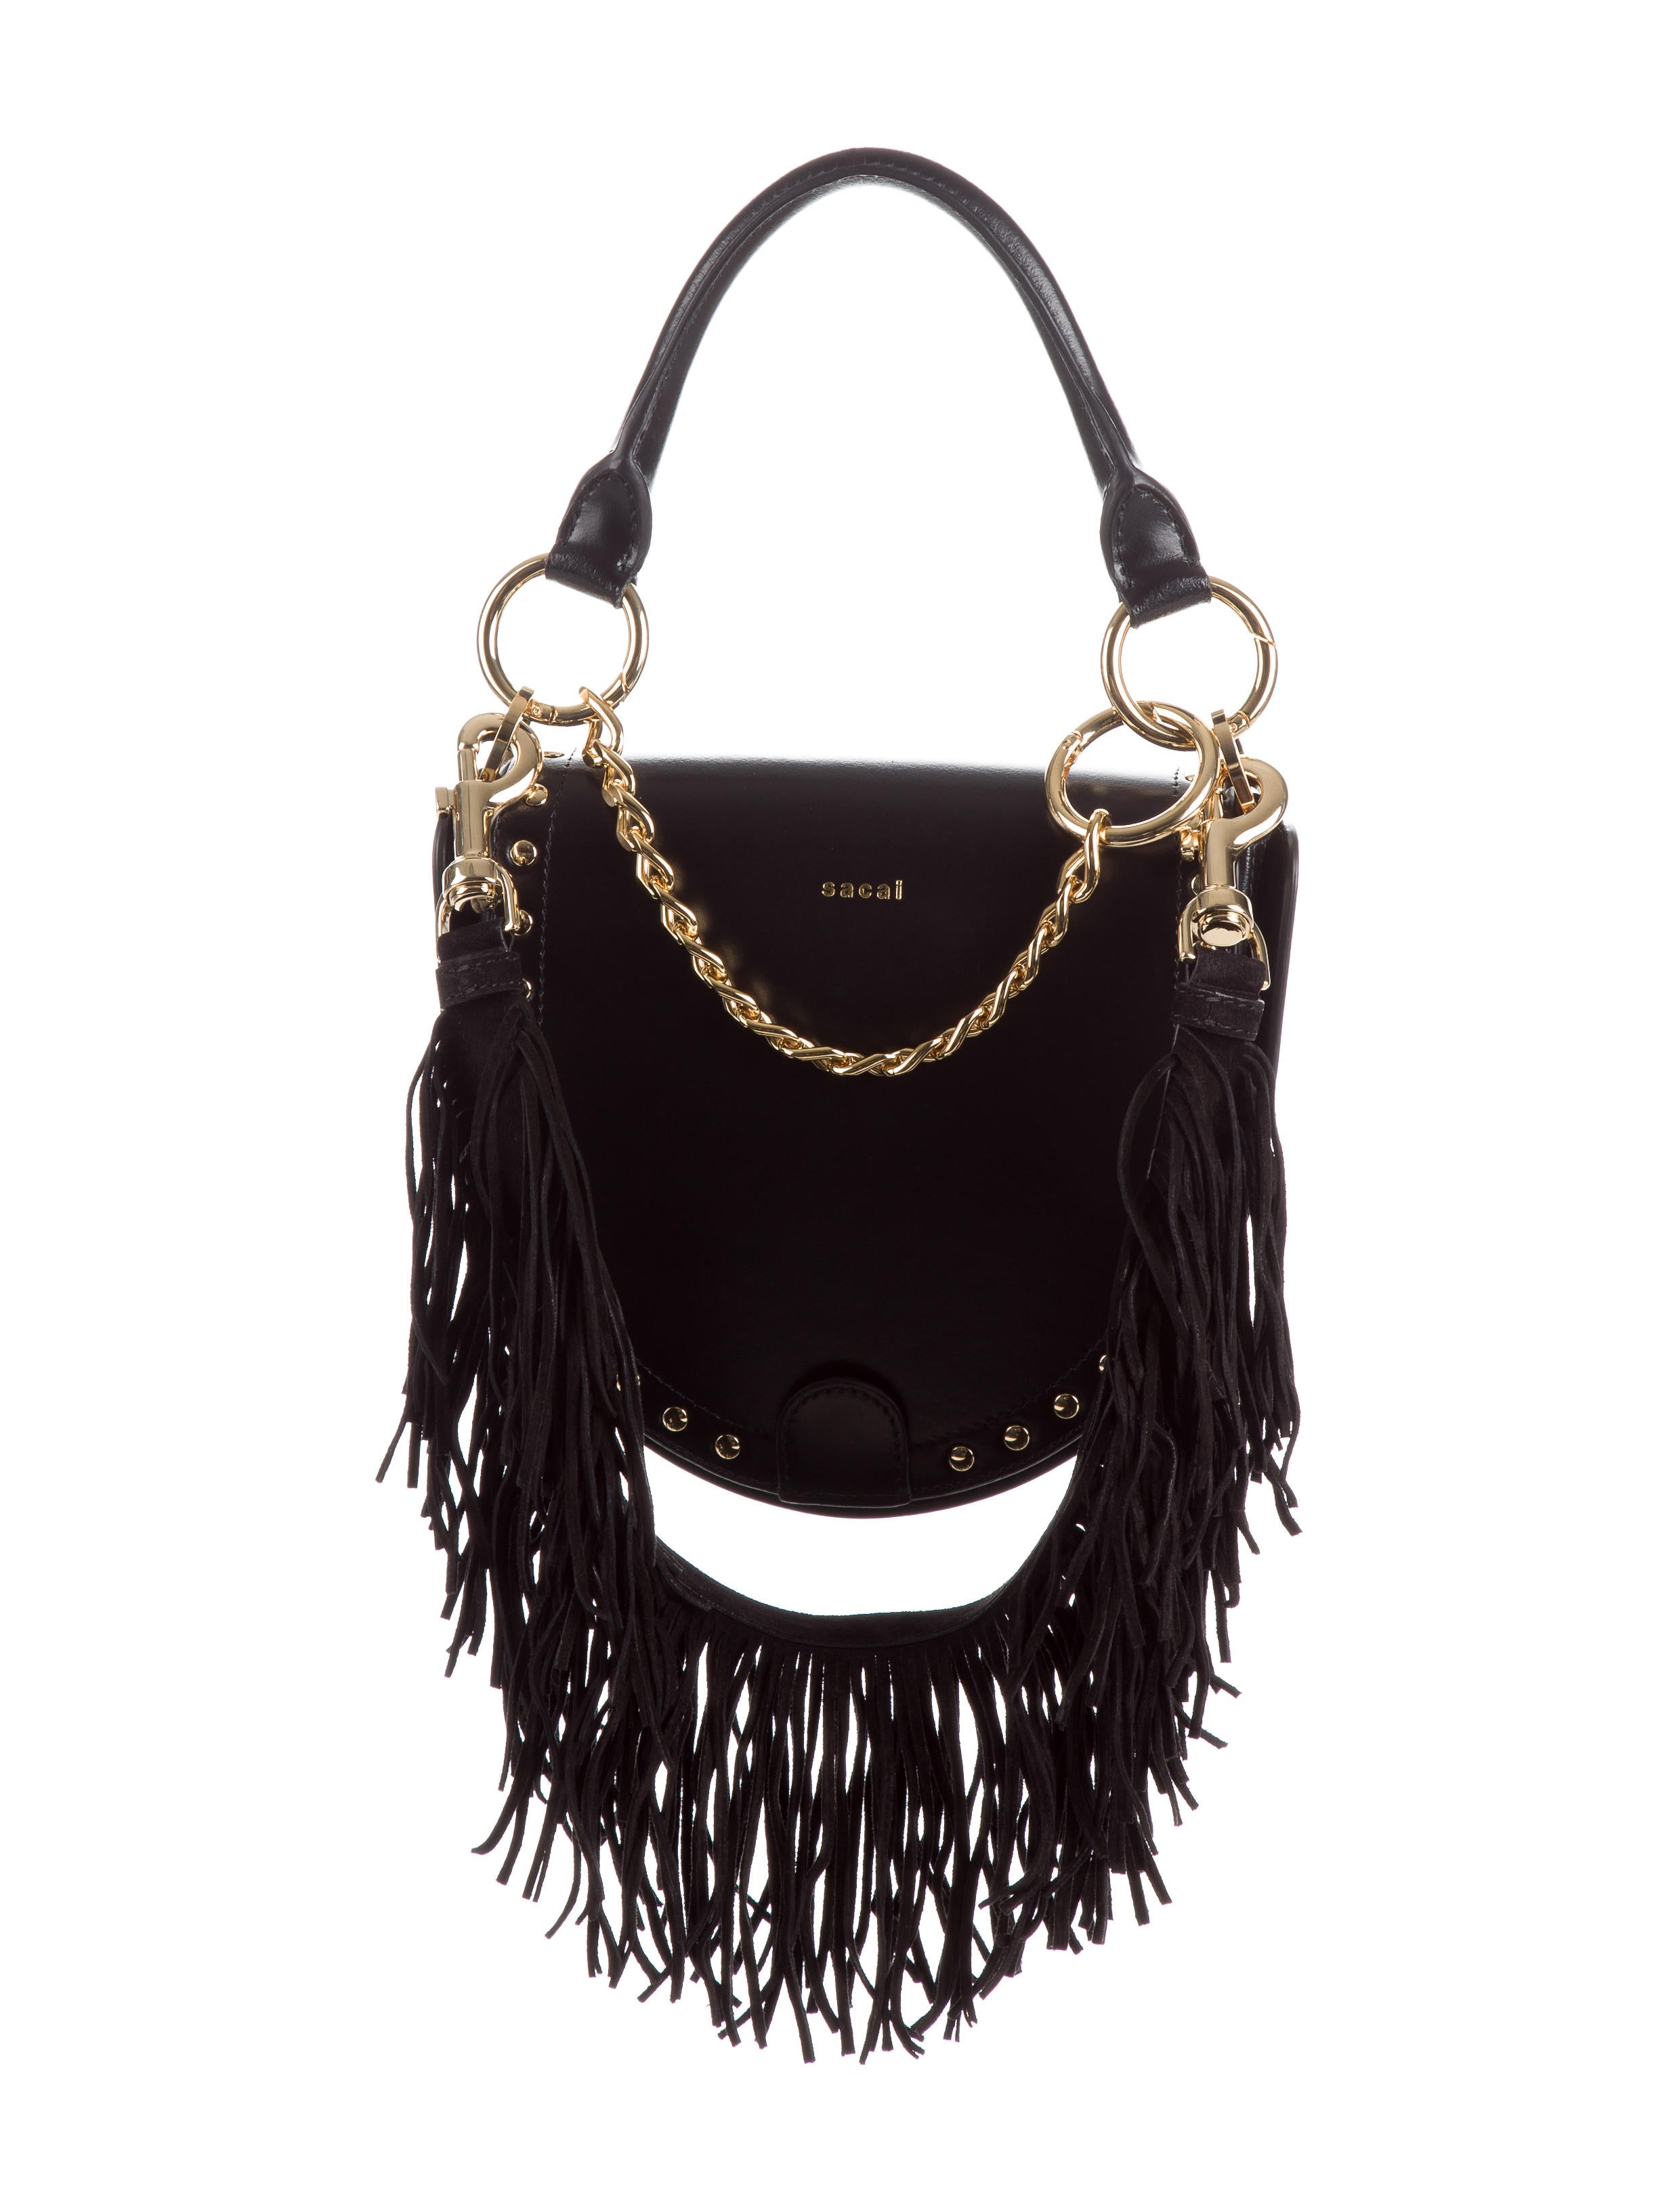 6222b09ca7d7 Sacai Fringe Leather Coin Bag - Handbags - WS121491